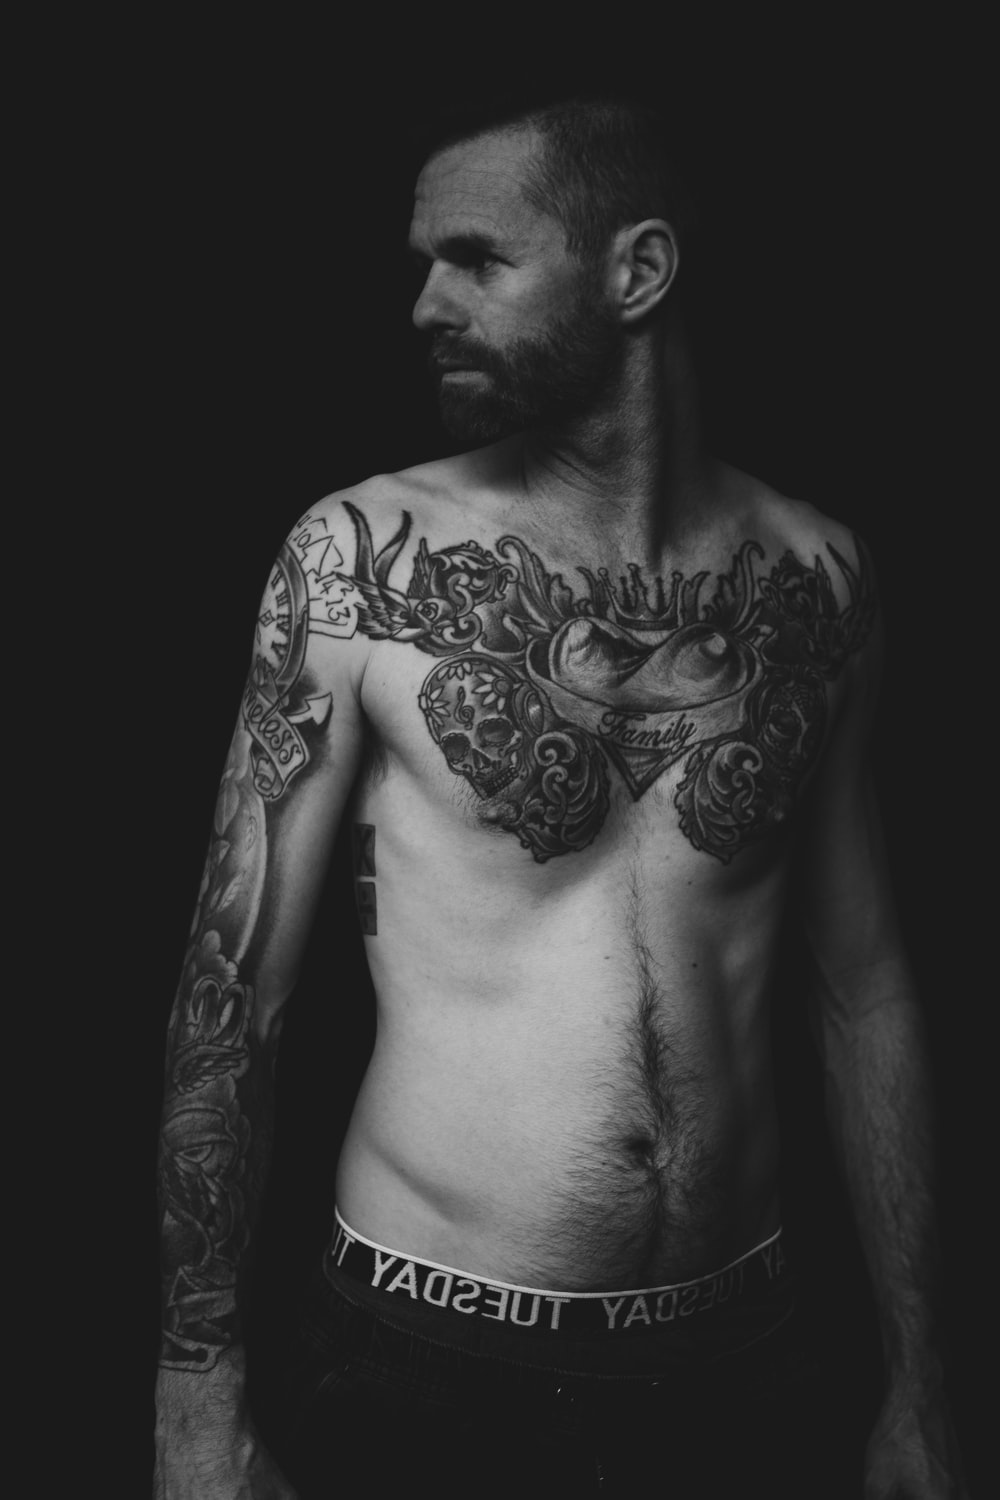 grayscale photography of topless man with tattoos